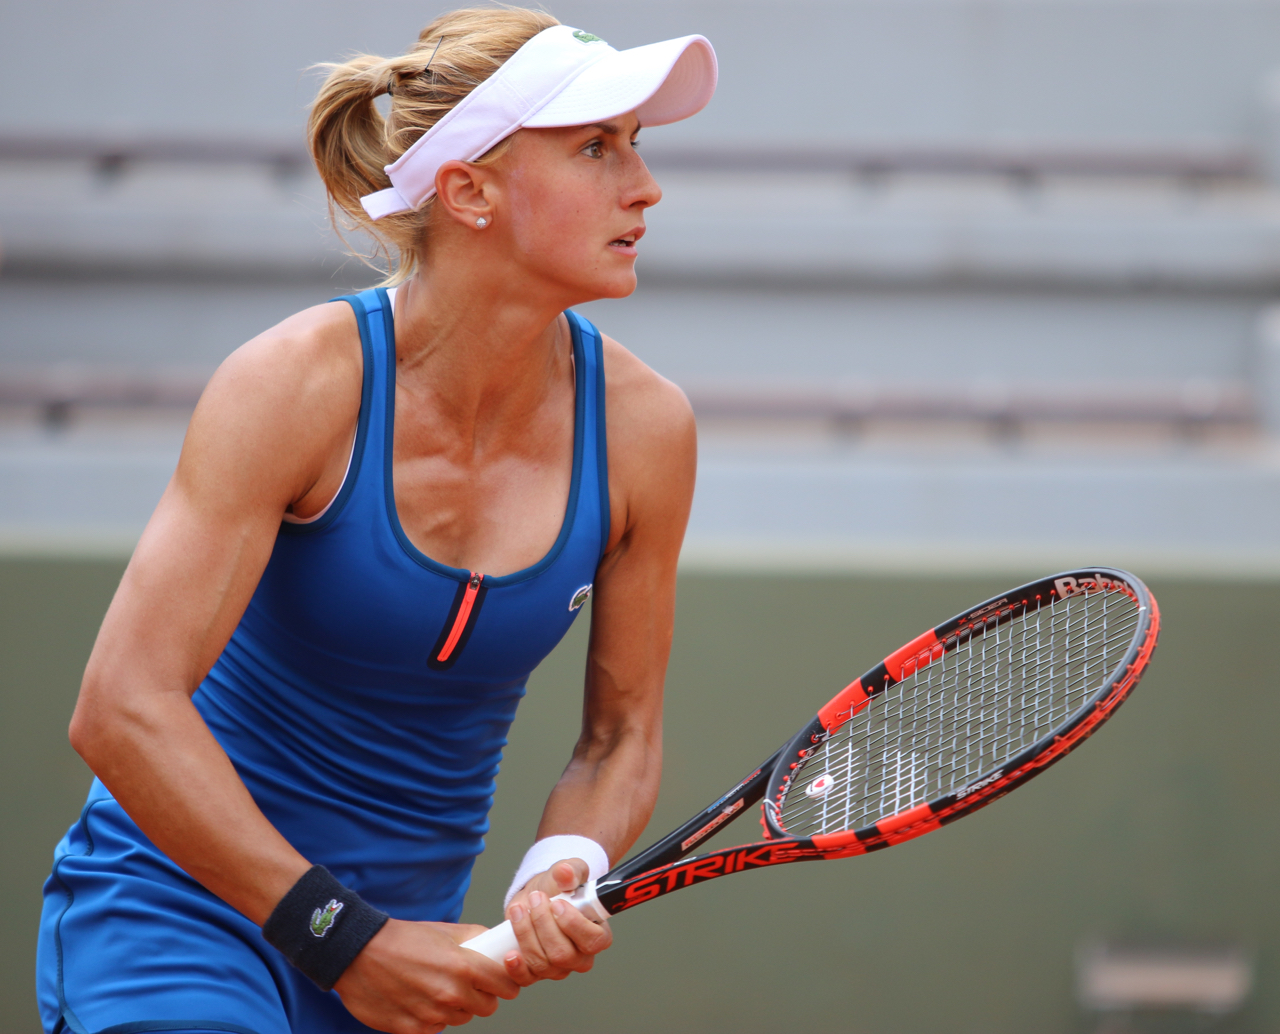 ACAPULCO TSURENKO WILL PLAY IN THE QUARTER-FINALS